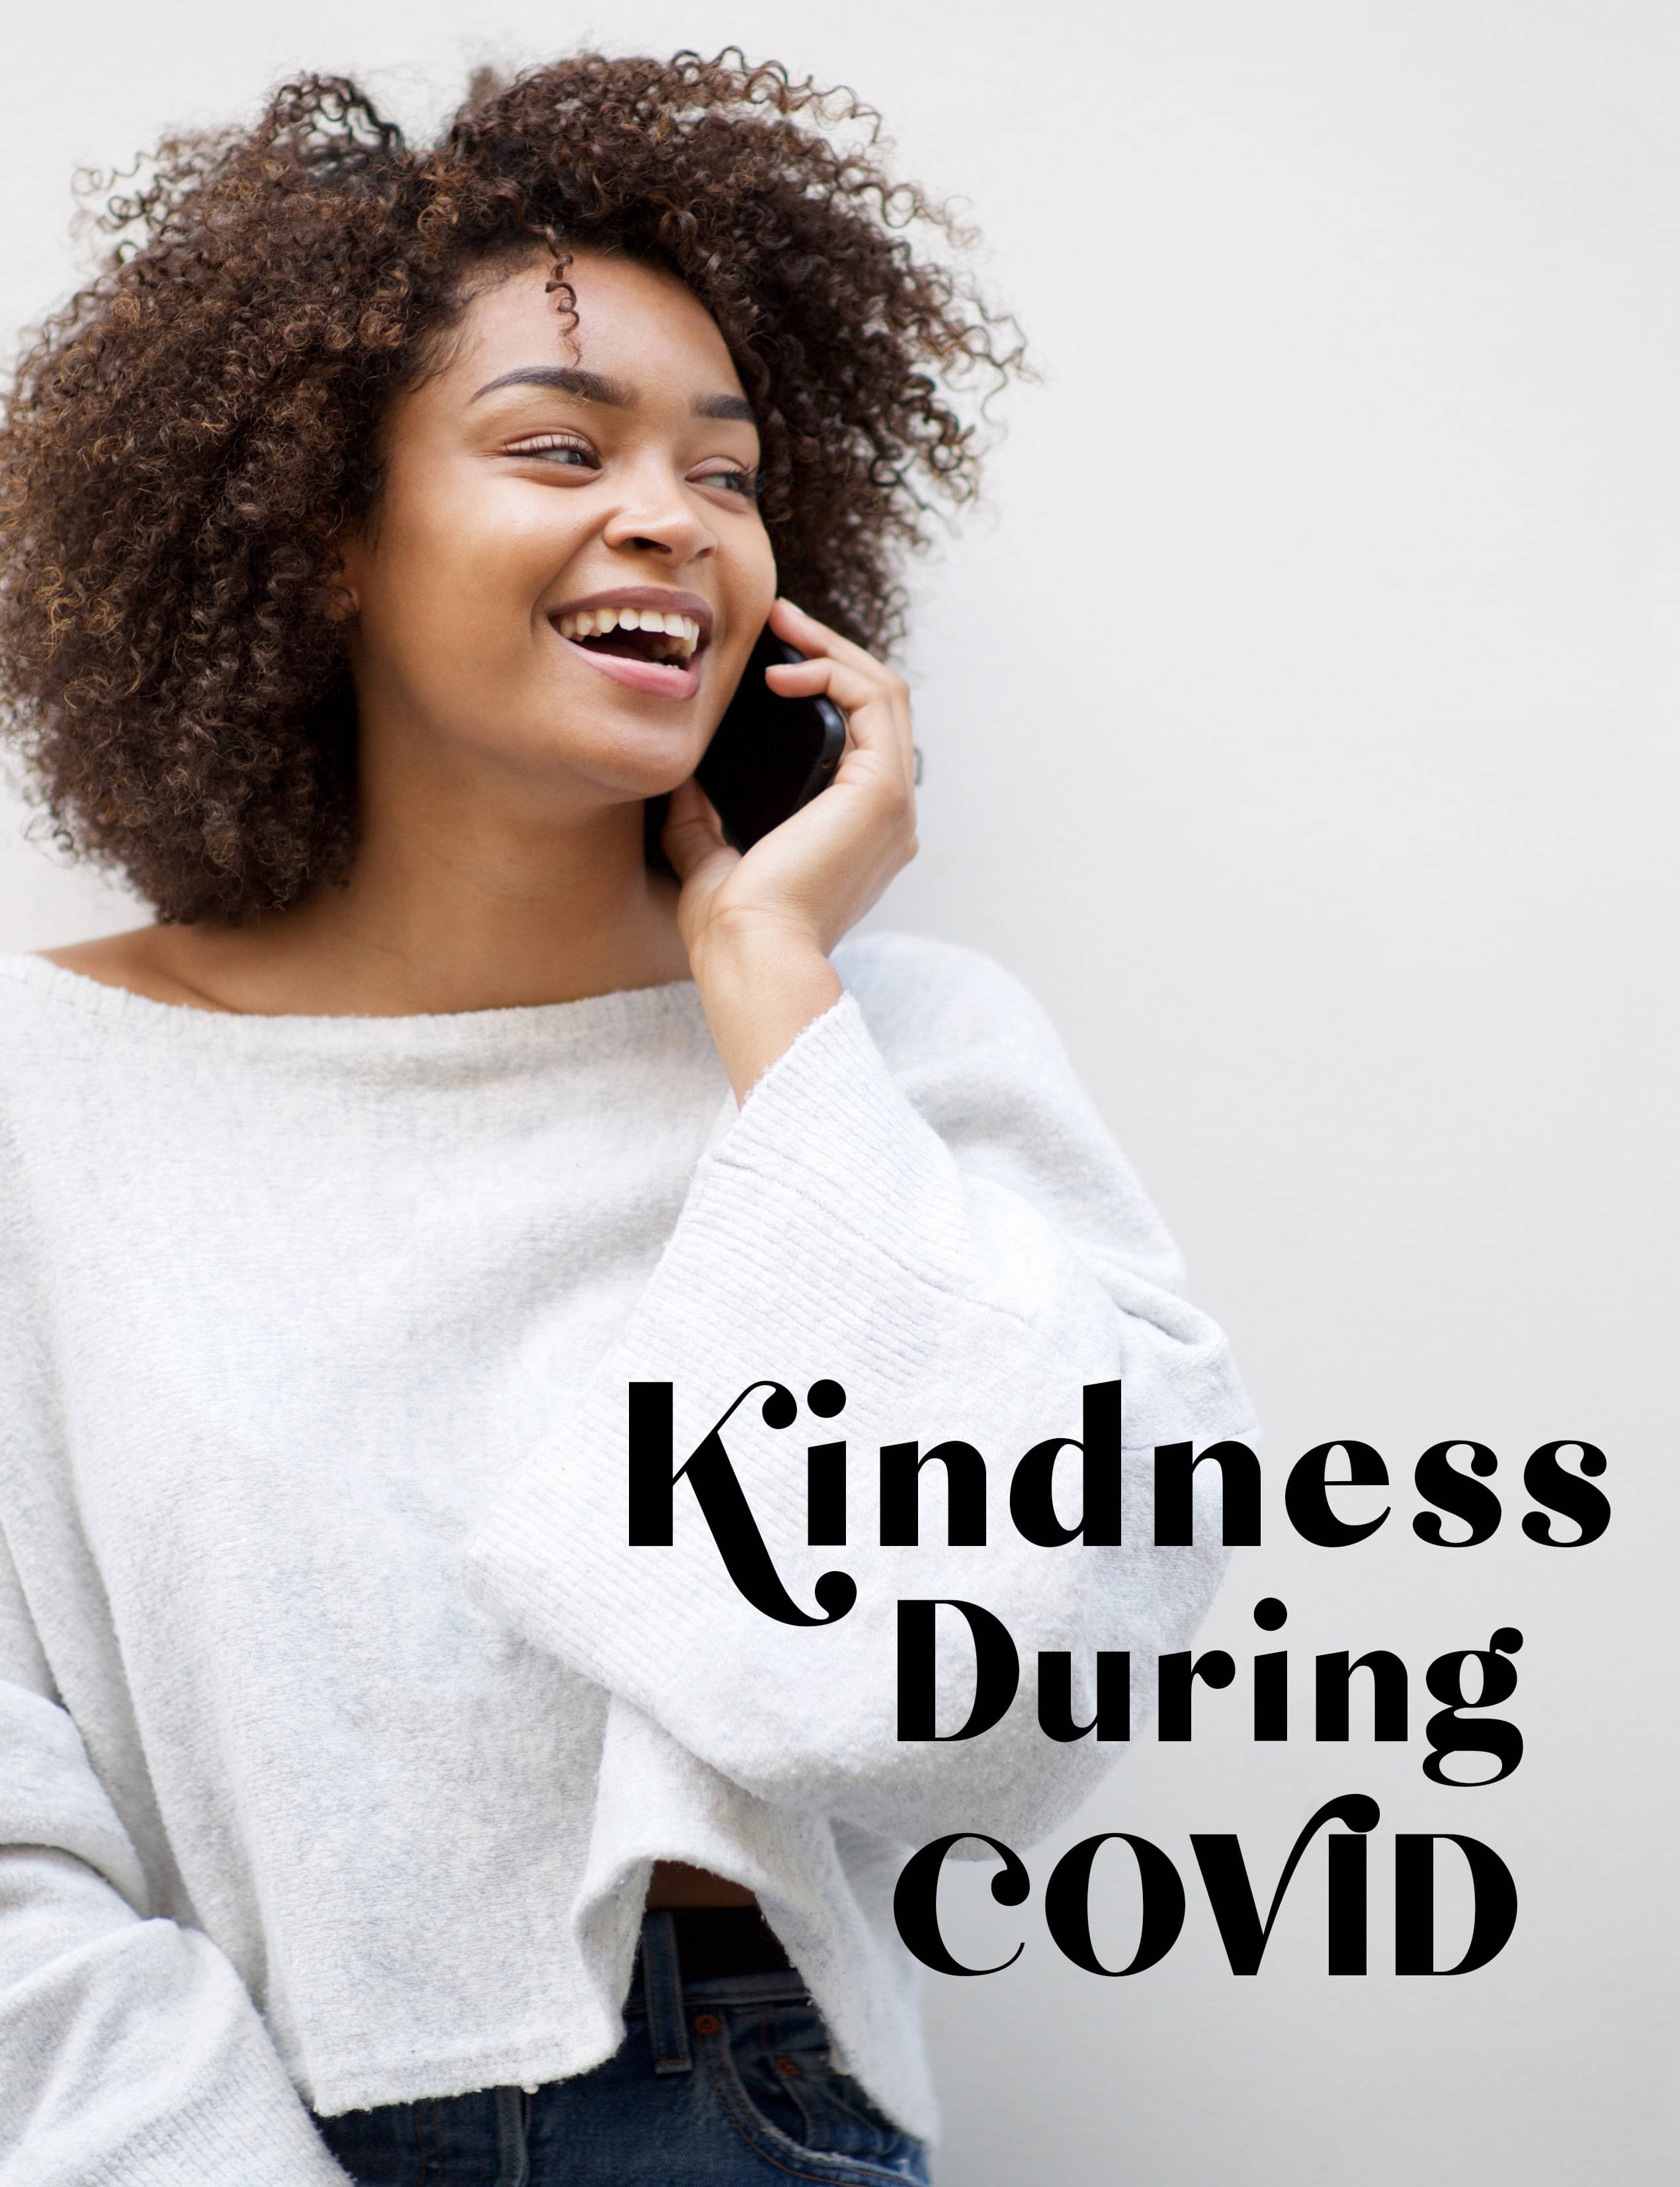 Kindness During COVID